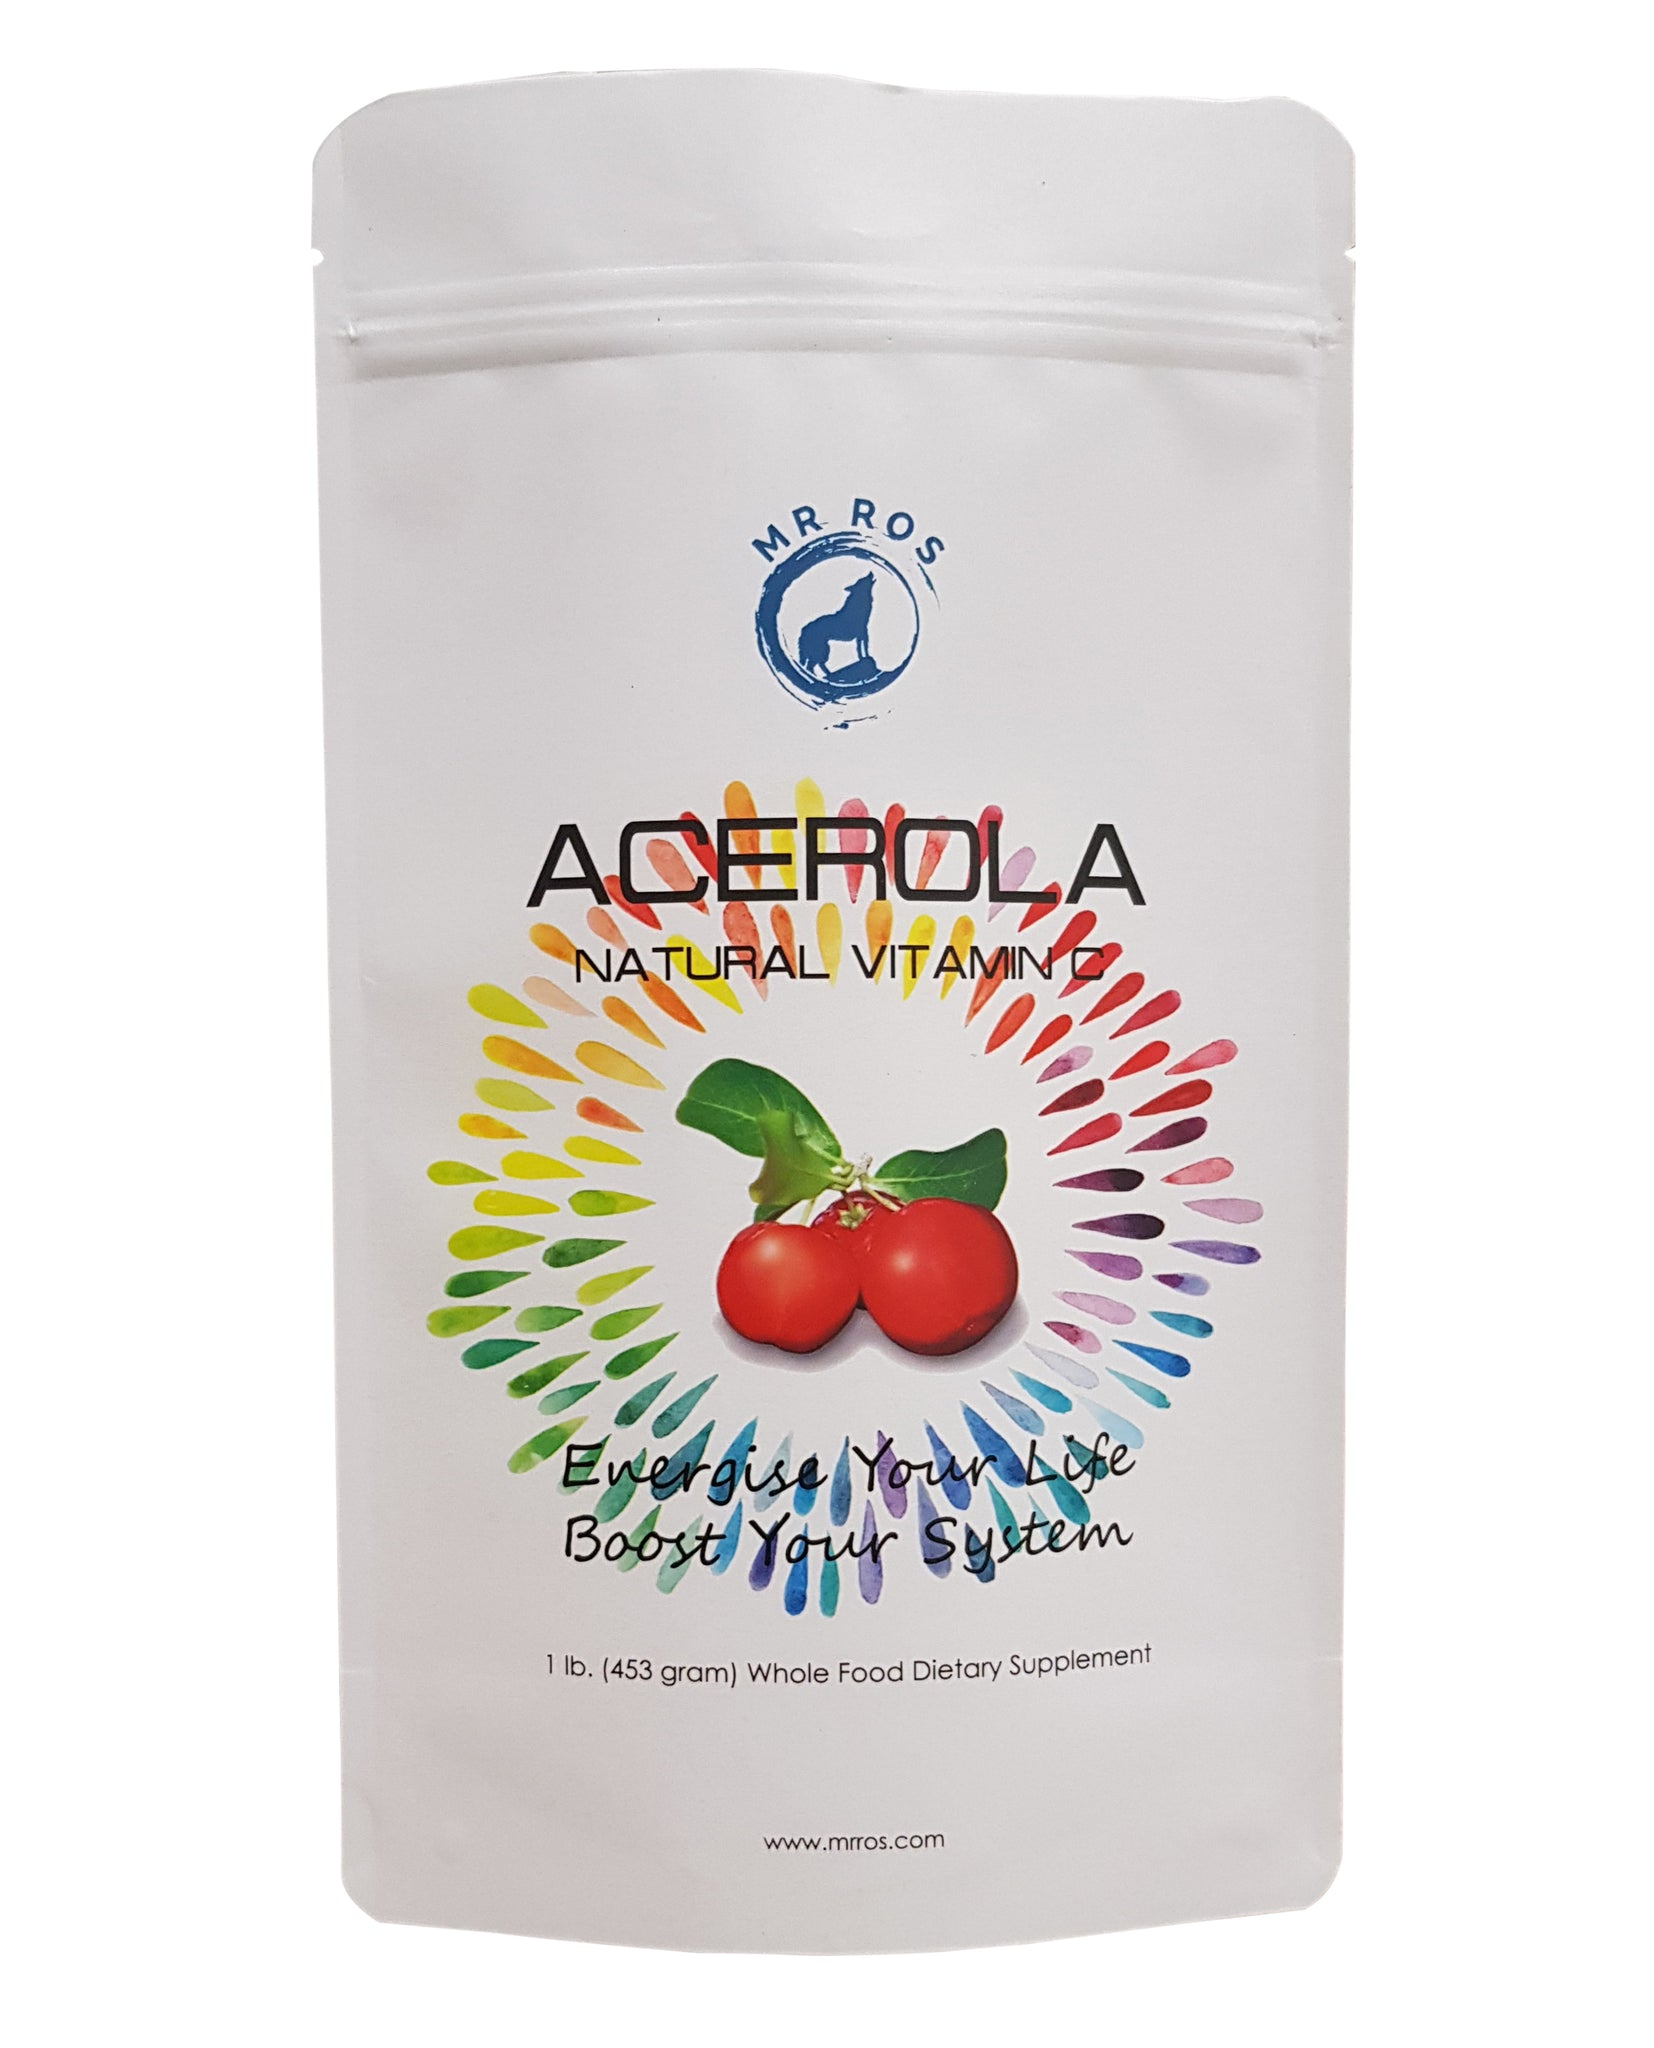 Natural Vitamin C Vitamins Acerola Powder-1 Lb Built your Immune System to Protect against any VIRUS - Mr Ros Natural Premium Superfoods